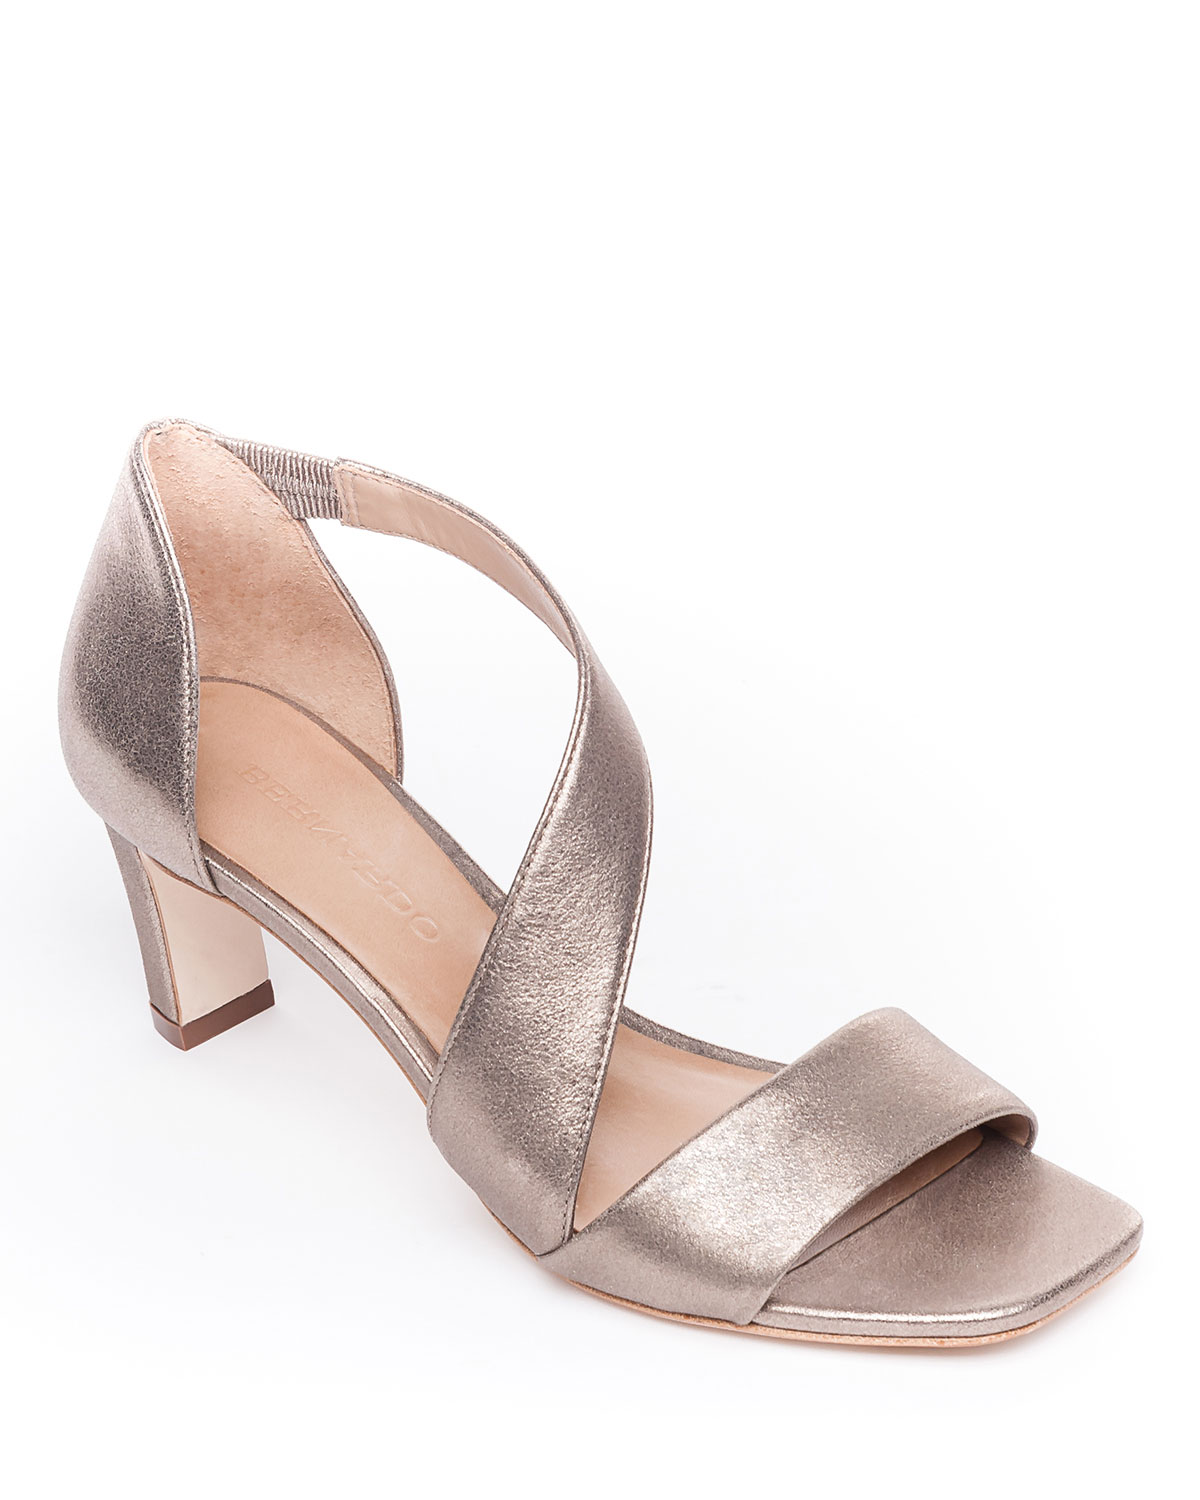 Bernardo Sandals CAMILLE METALLIC LEATHER CROSSOVER STRAP SANDALS